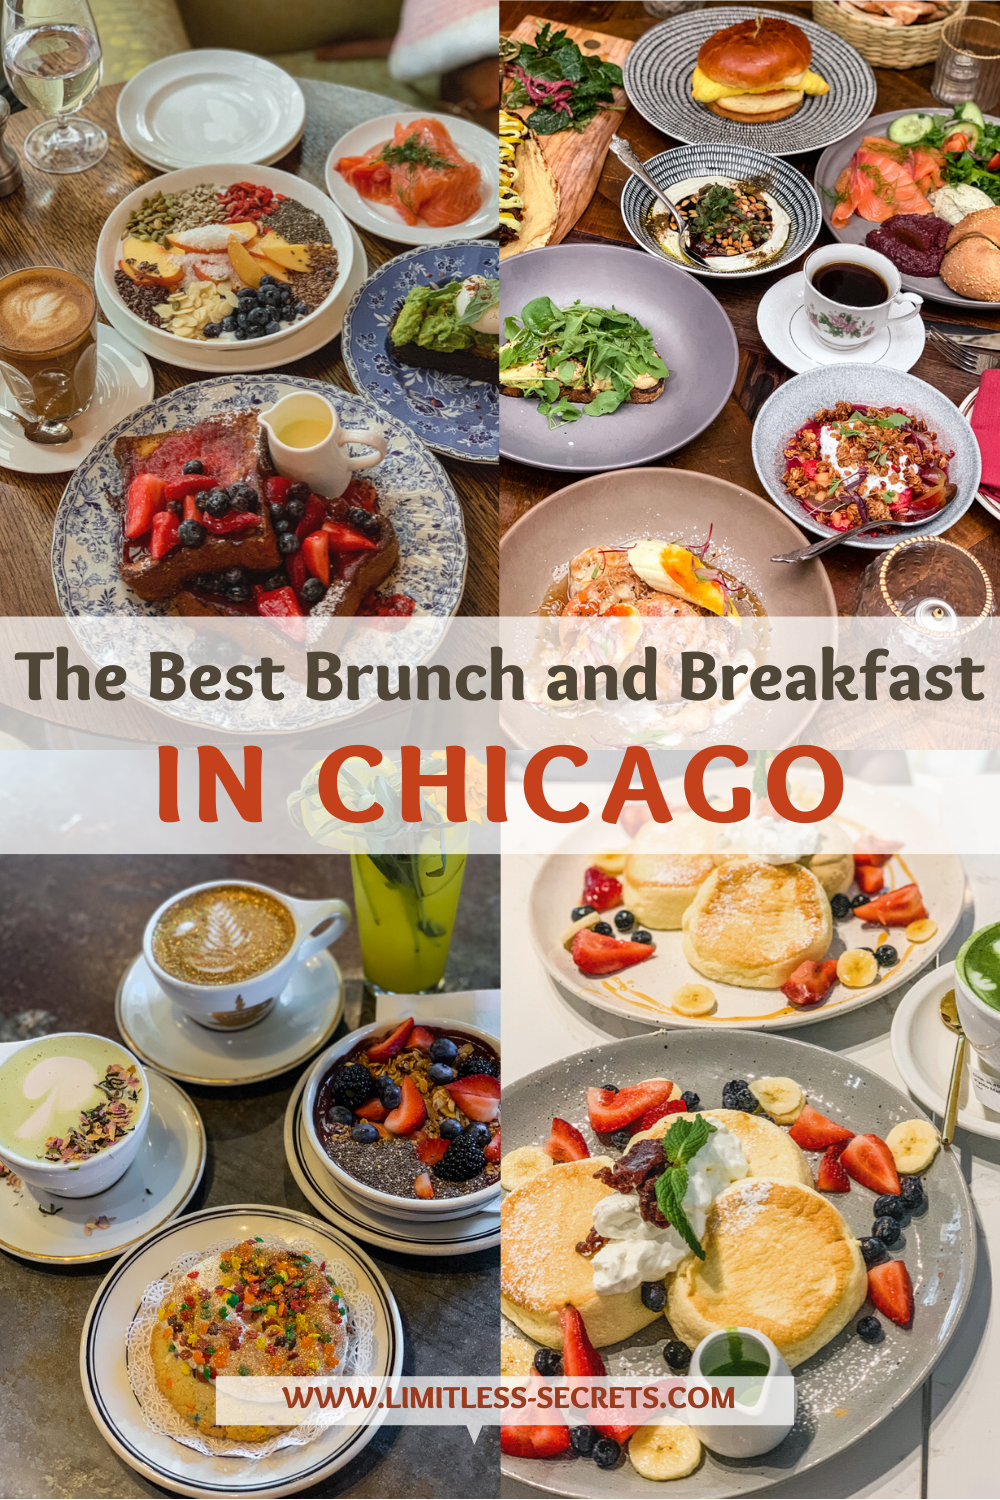 Best Breakfast and Brunch in Chicago. As a foodie, I looked for the best spots for brunch and breakfast in Chicago and I found many good cafes and restaurants! I am sharing with you my favorite addresses to eat the best food in the Windy City! Take a look to discover the best places to eat brunch and breakfast in Chicago! Chicago eats | Best places to eat in Chicago | Where to eat in Chicago | Where to have brunch in Chicago | where to eat breakfast in Chicago | Chicago travel guides